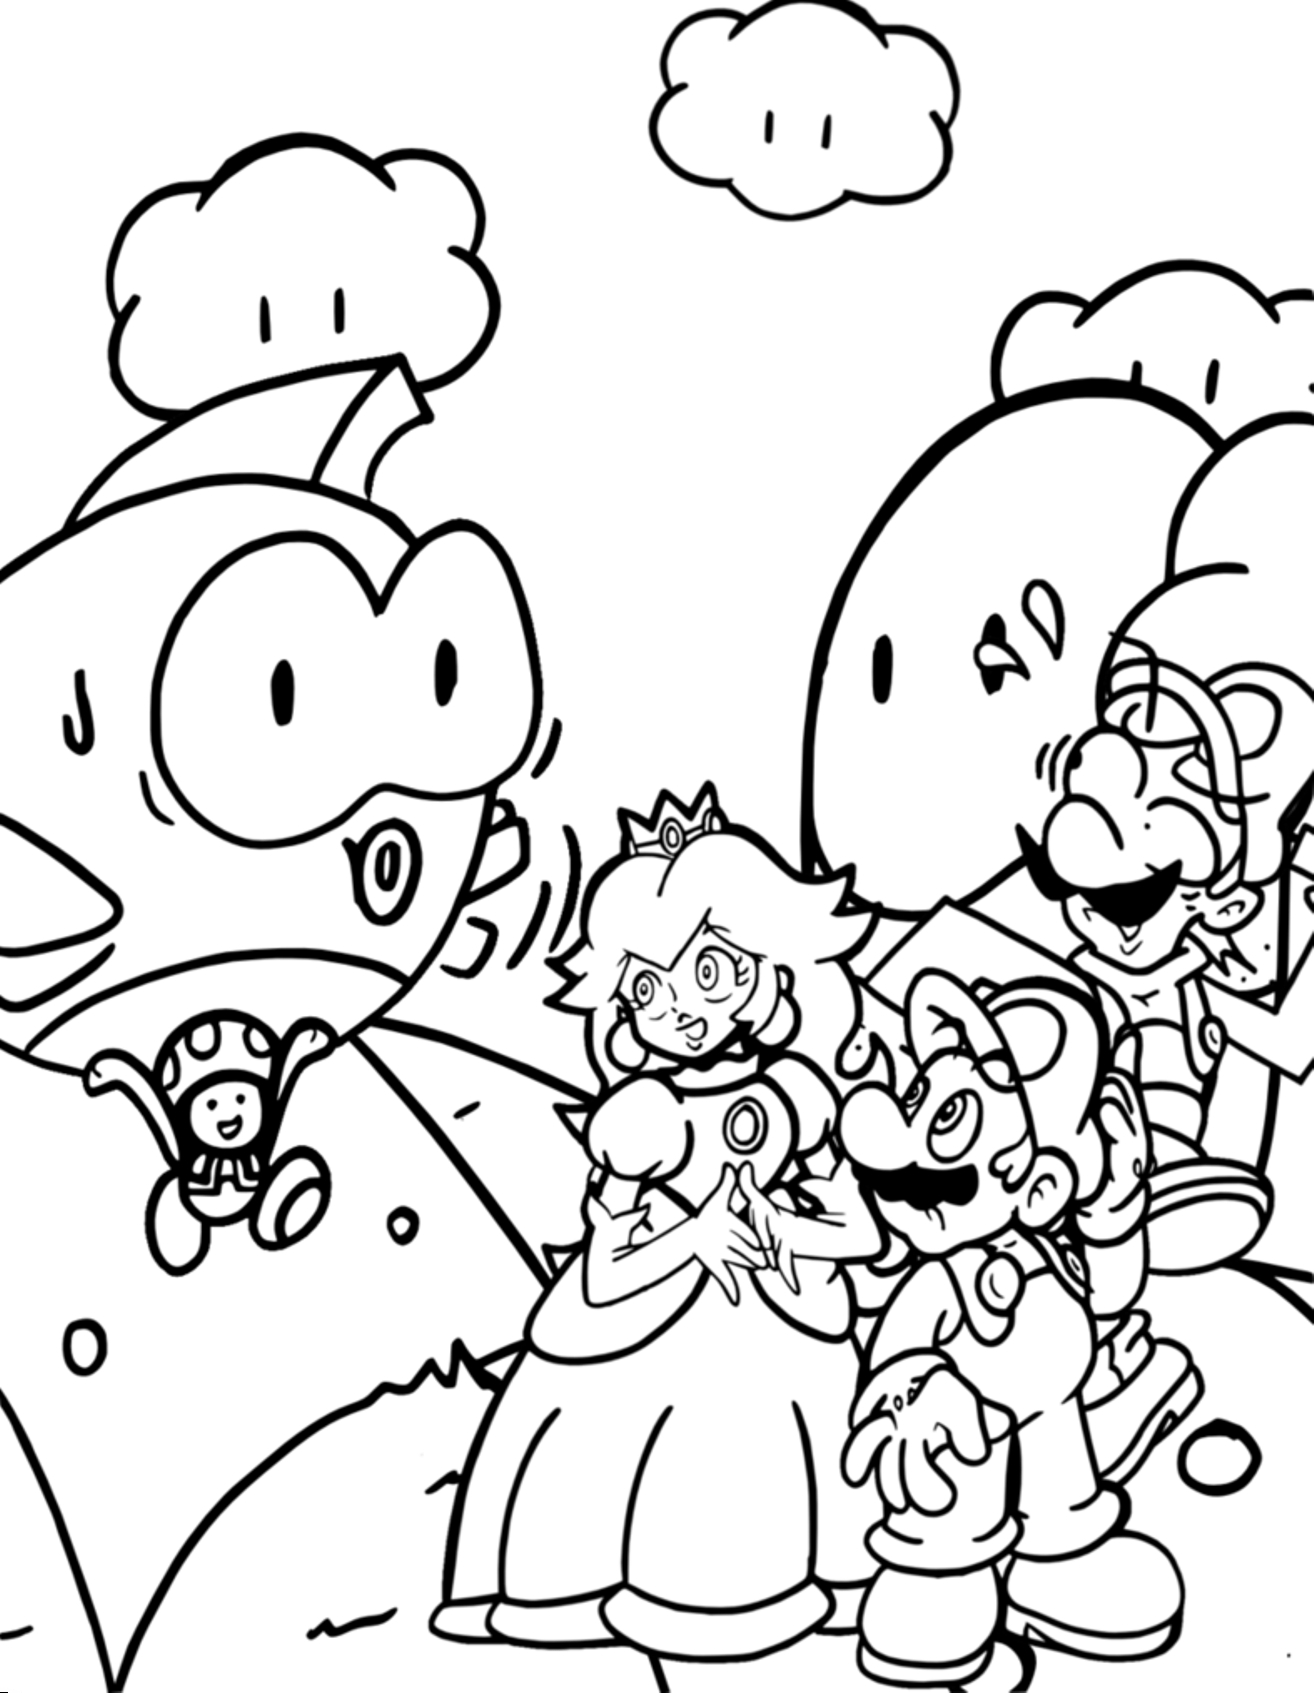 Free Mario Coloring Pages Coloring Pages Gallery Of Super Mario Coloring Pages Bonnieleepanda Gallery